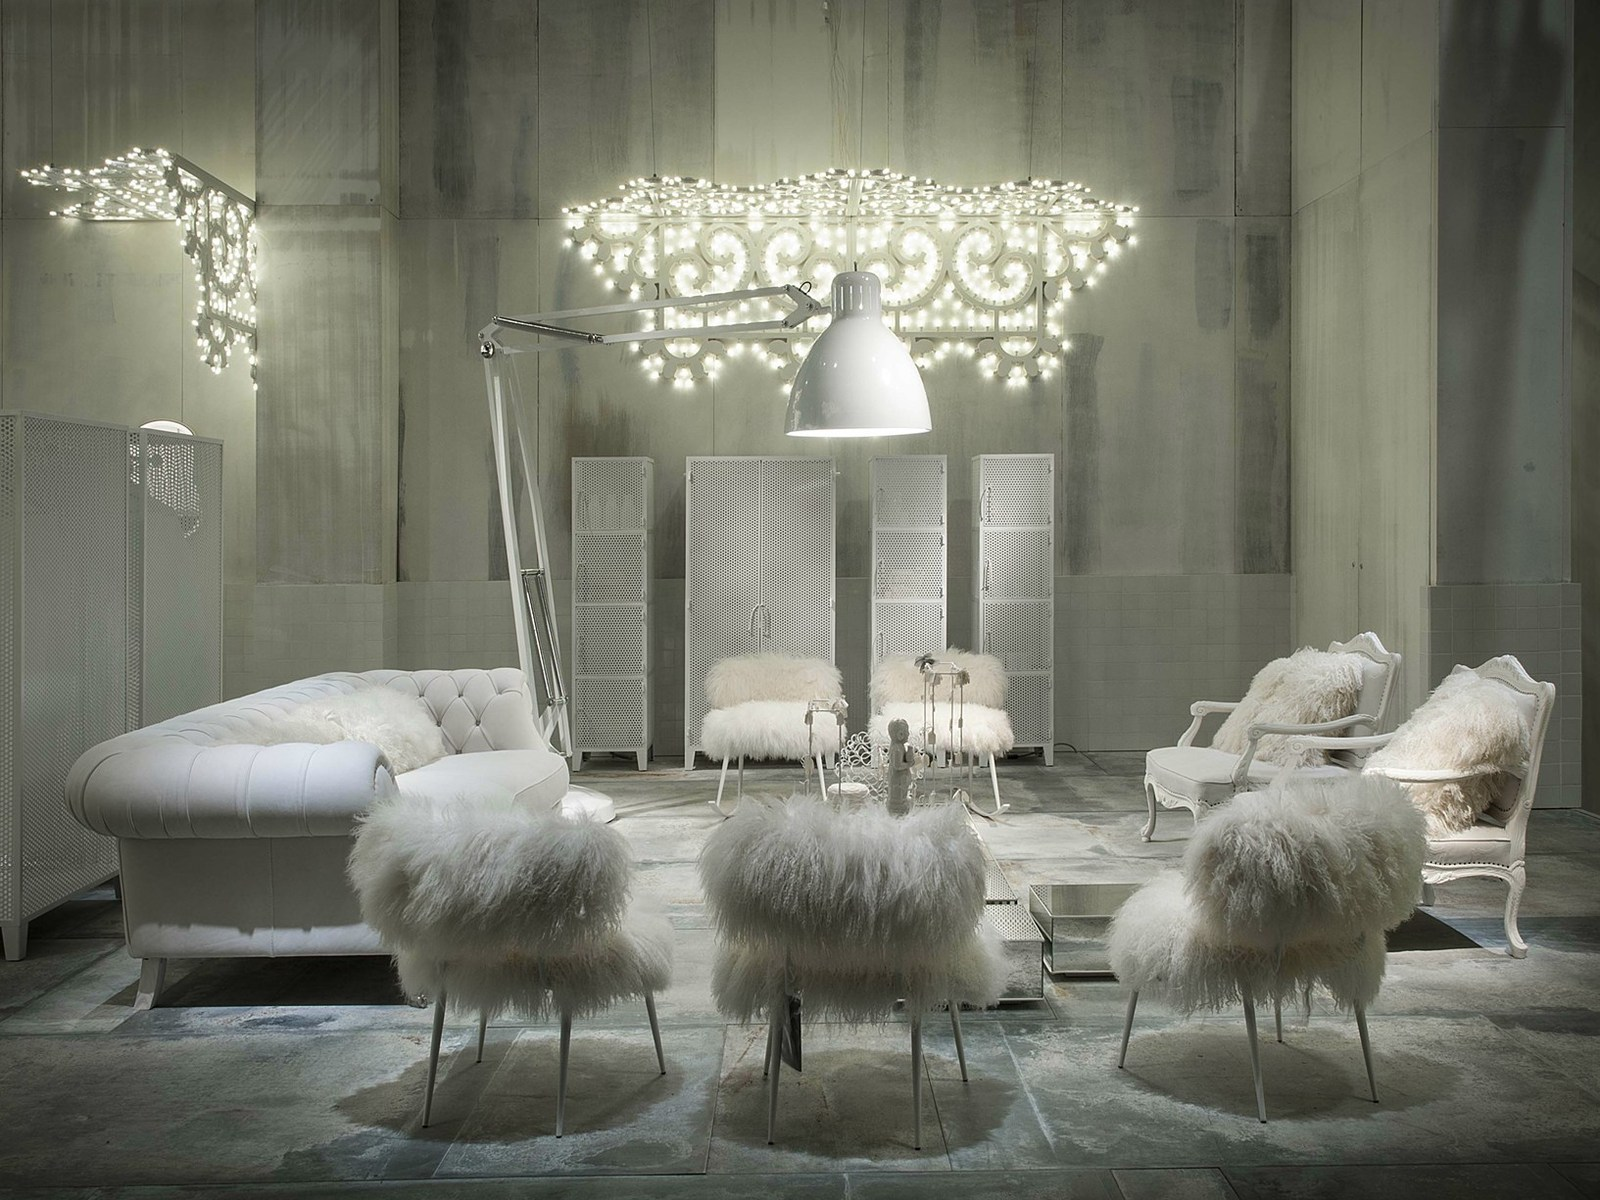 Paola navone designs white fairy tale like interiors to for Room design in nepal